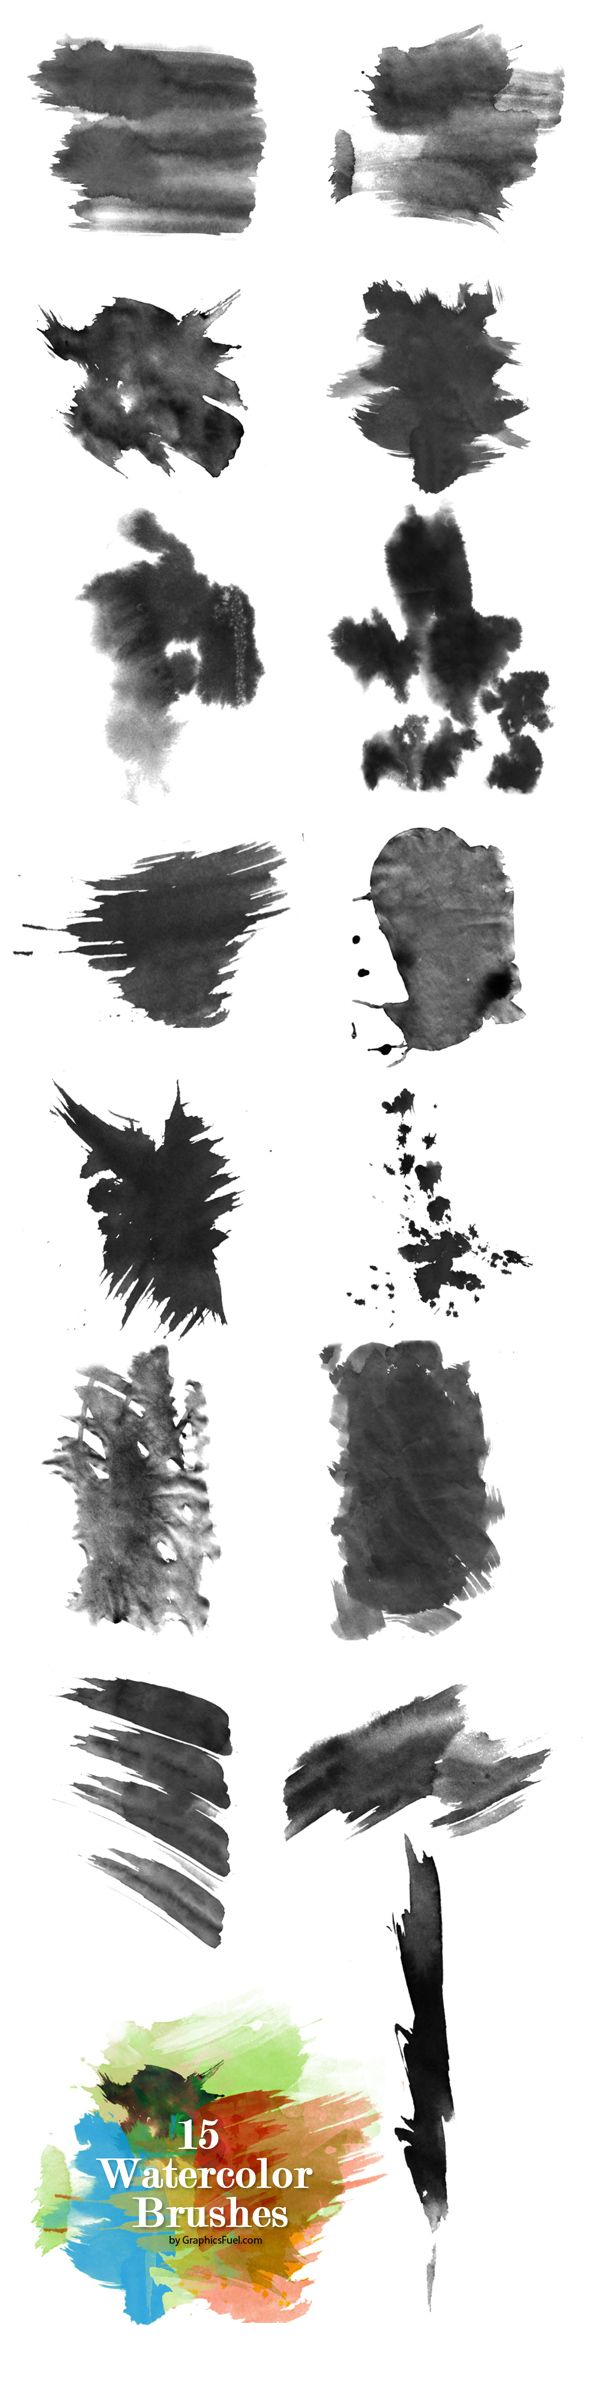 Watercolor Brushes Preview